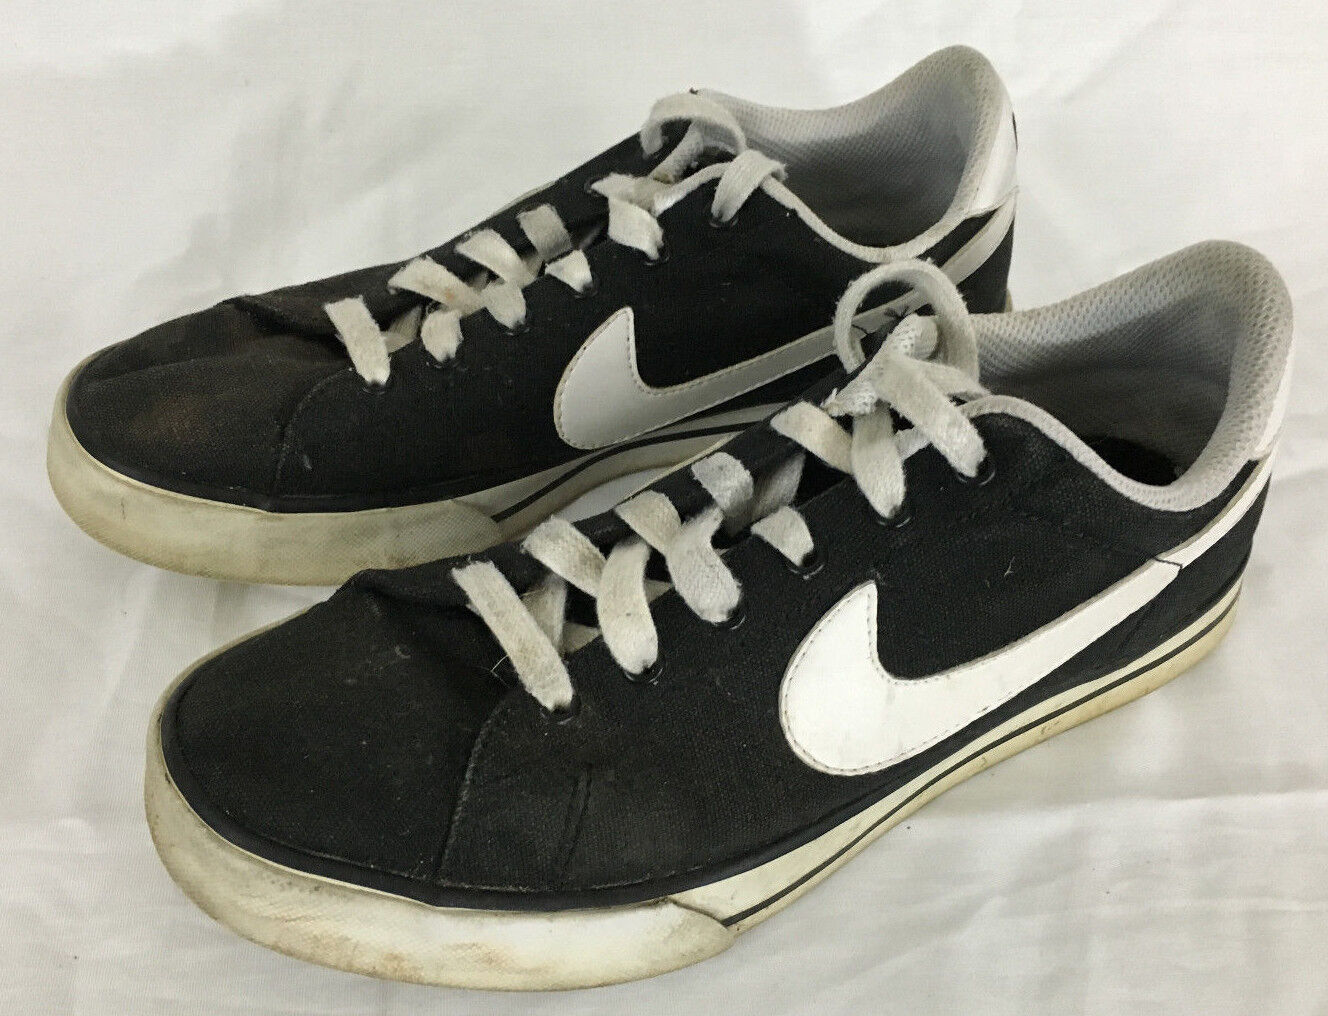 Nike Casual Sweet Classic Canvas Women's Casual Nike Shoe Black and White Size 7.5 79850c